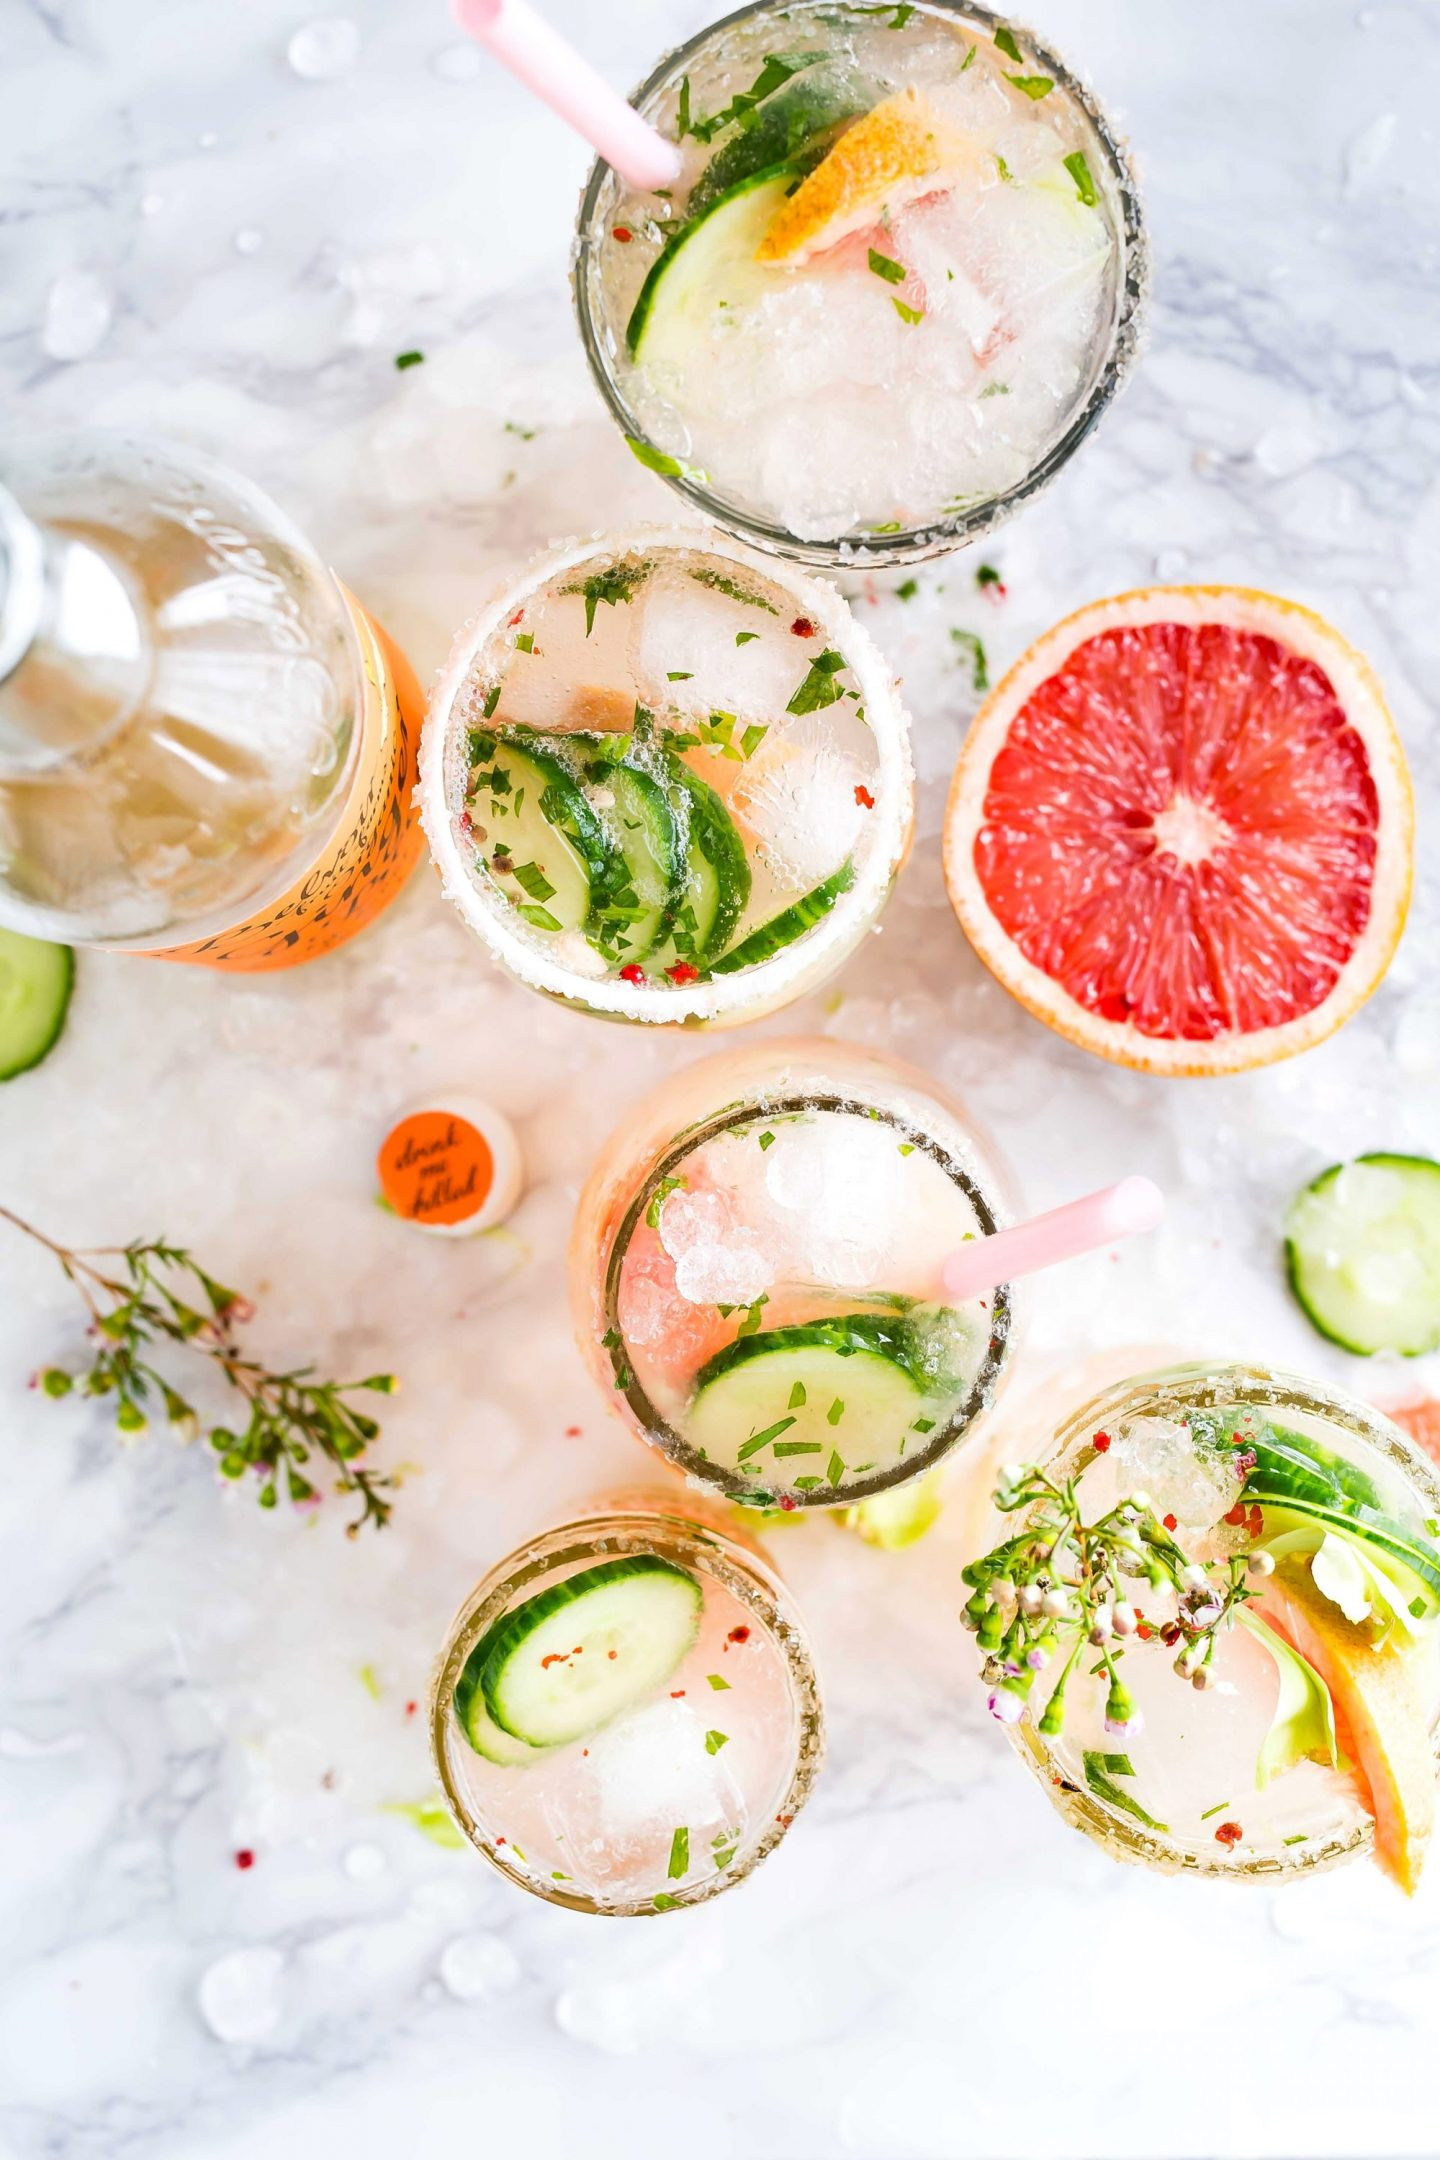 Body Detox – To Do or Not to Do? – Pros and Cons